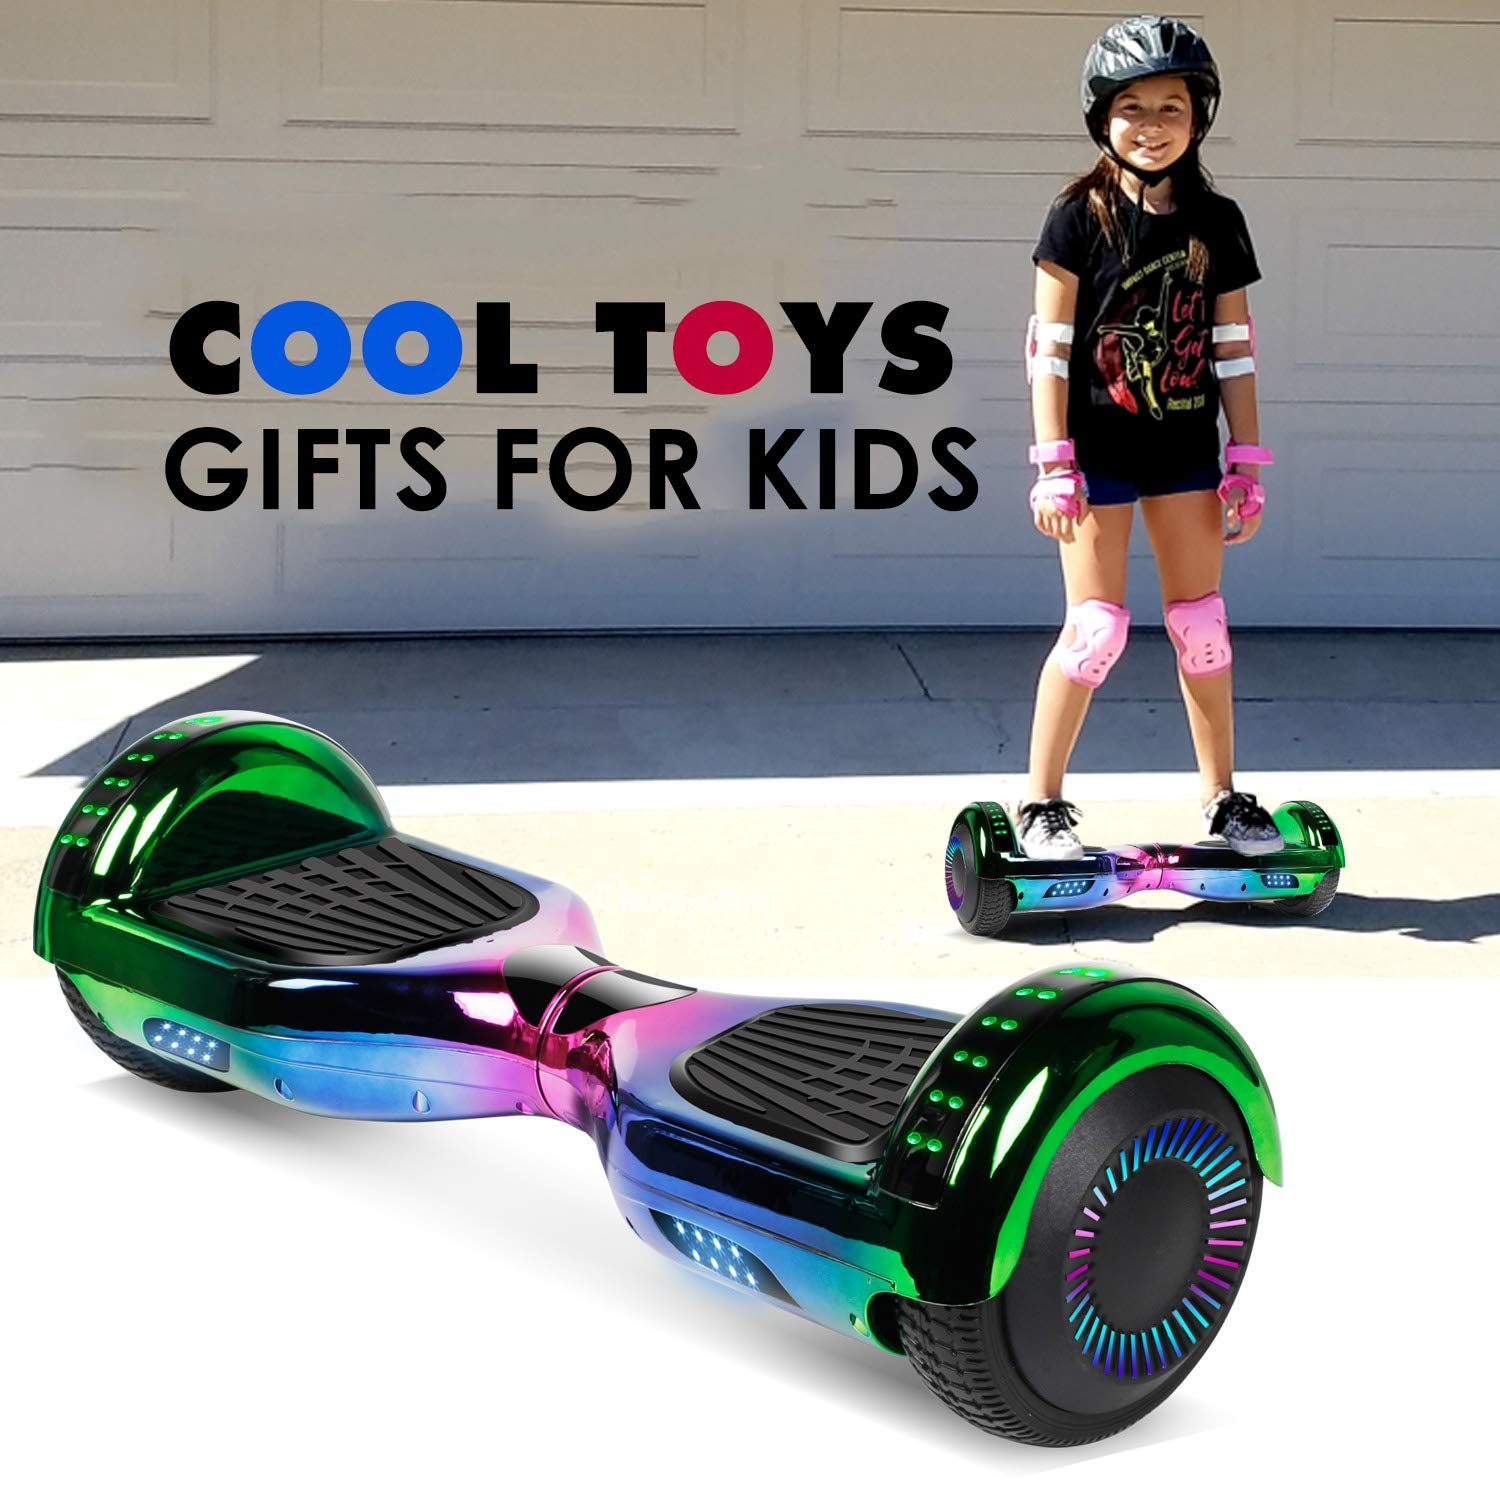 jolege Hoverboard with Bluetooth 6.5 inch Self Balancing Hoverboards for Kids with LED Flahing Lights-UL2272 Certified by jolege (Image #7)